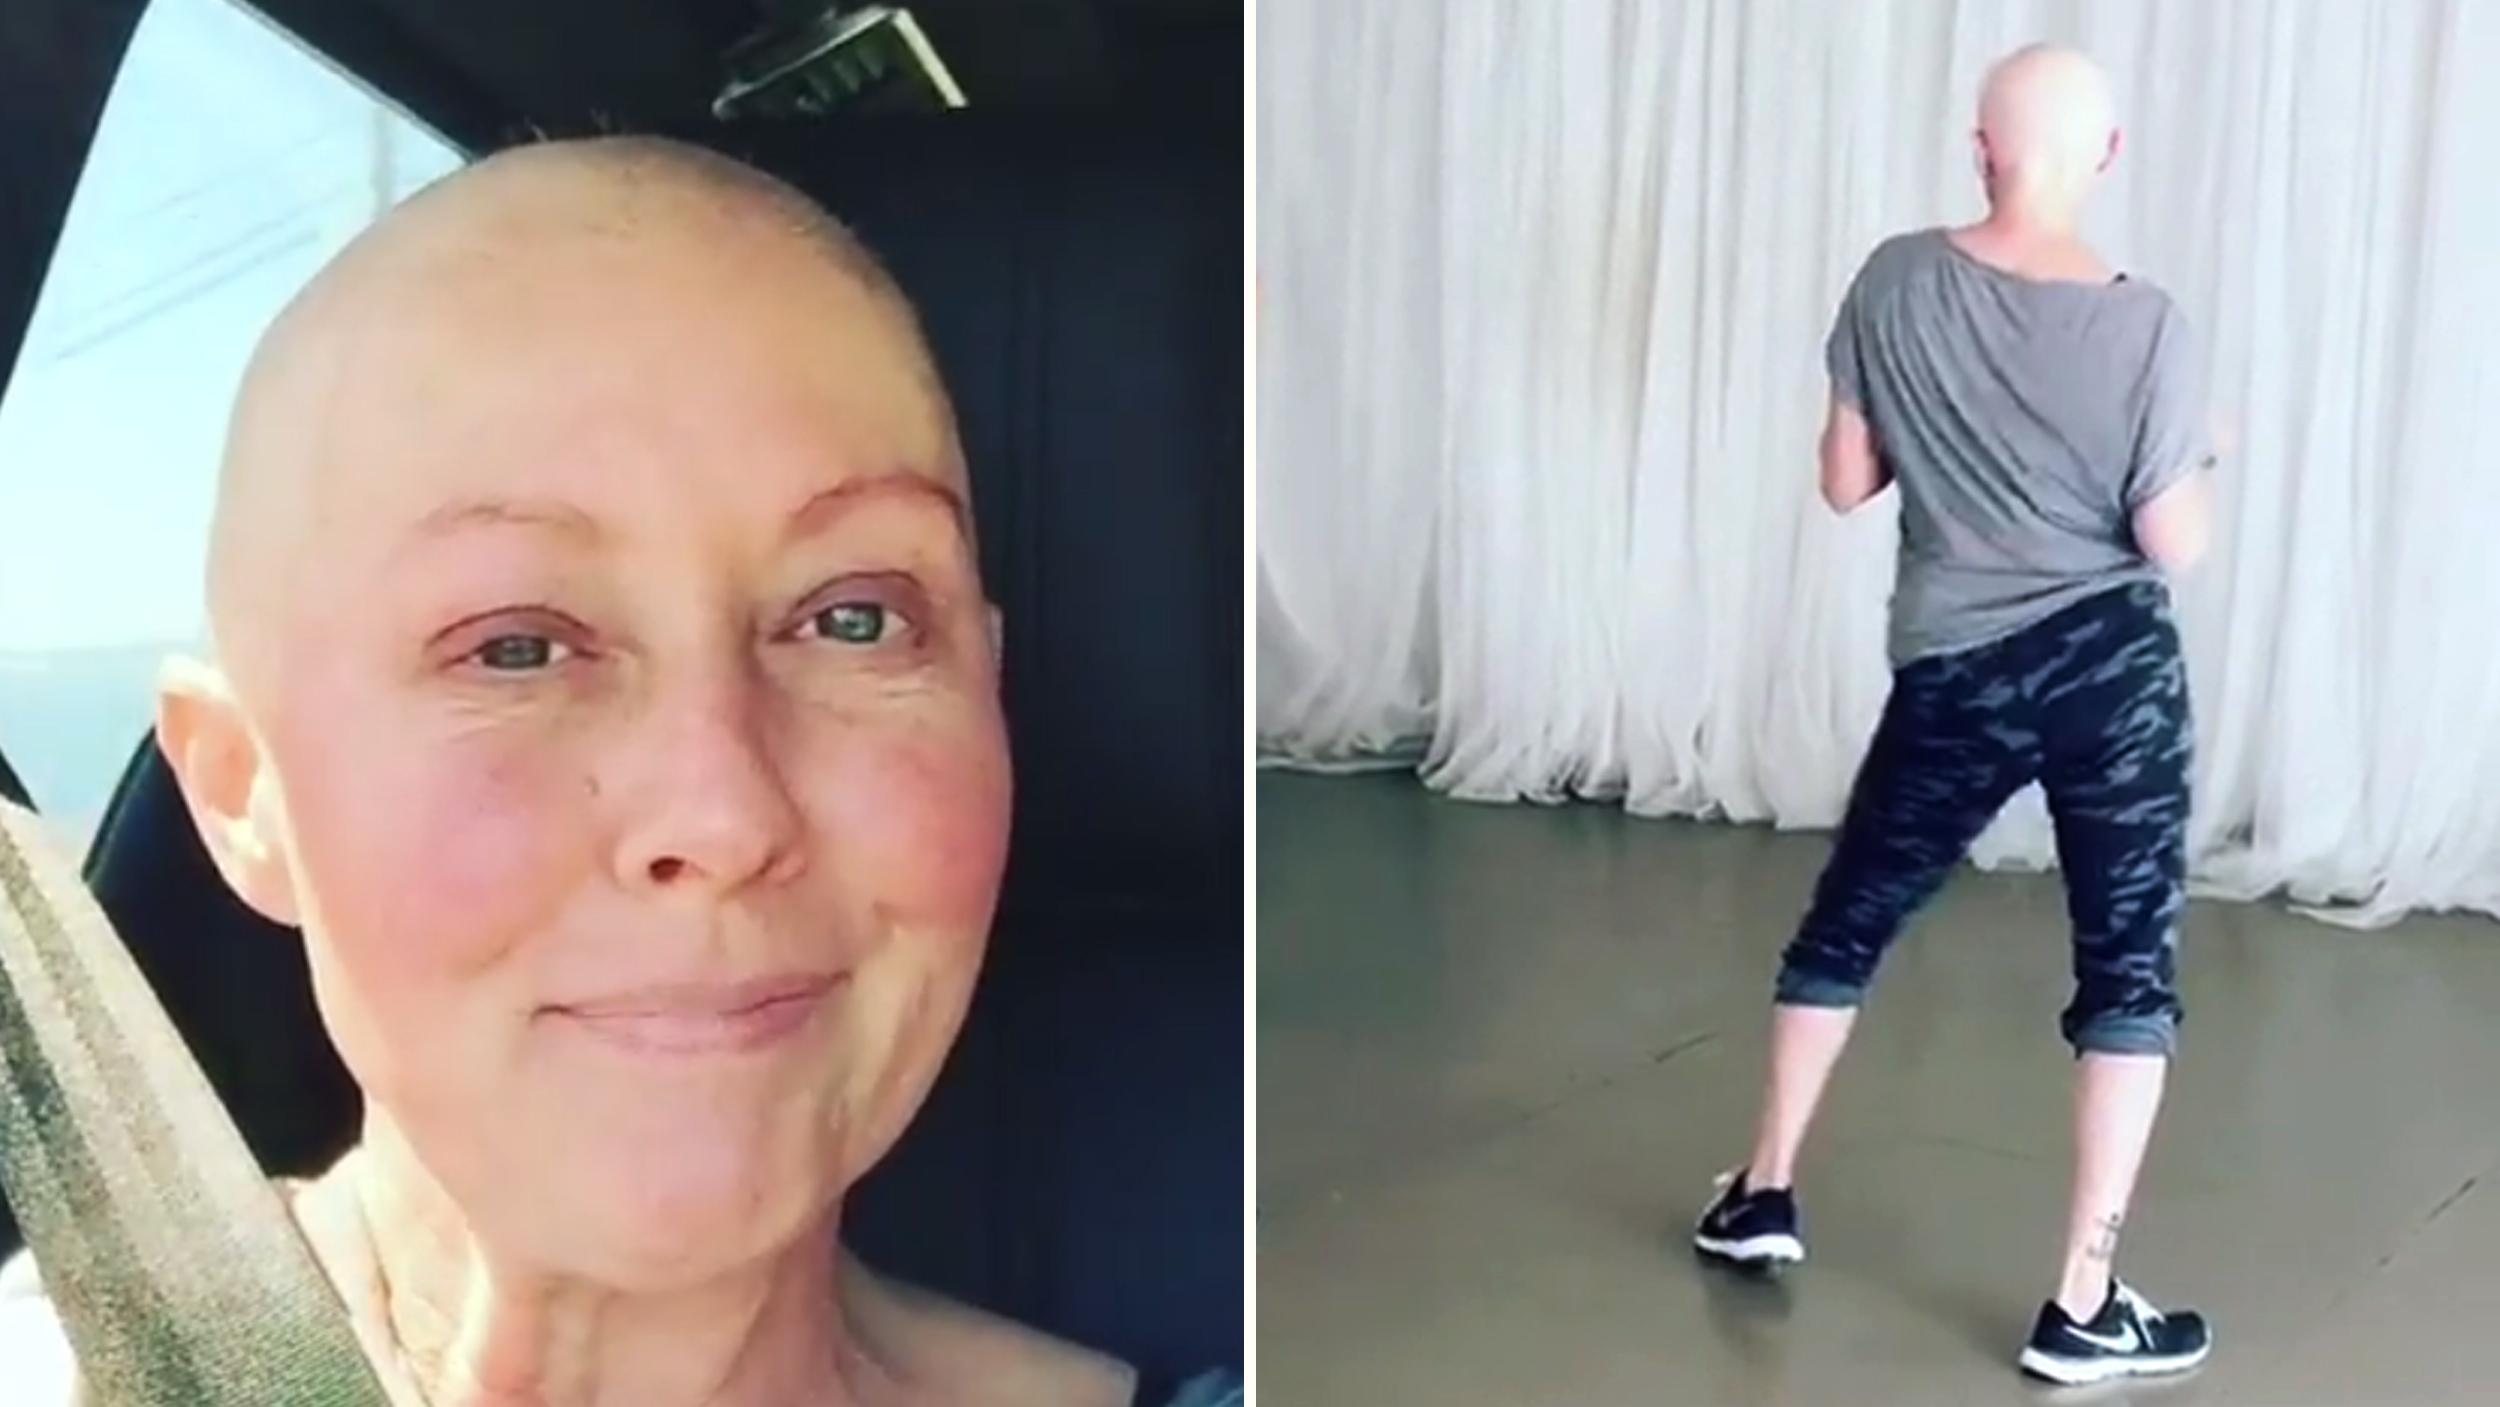 Shannen Doherty dances for the sake of his father 09.03.2010 53